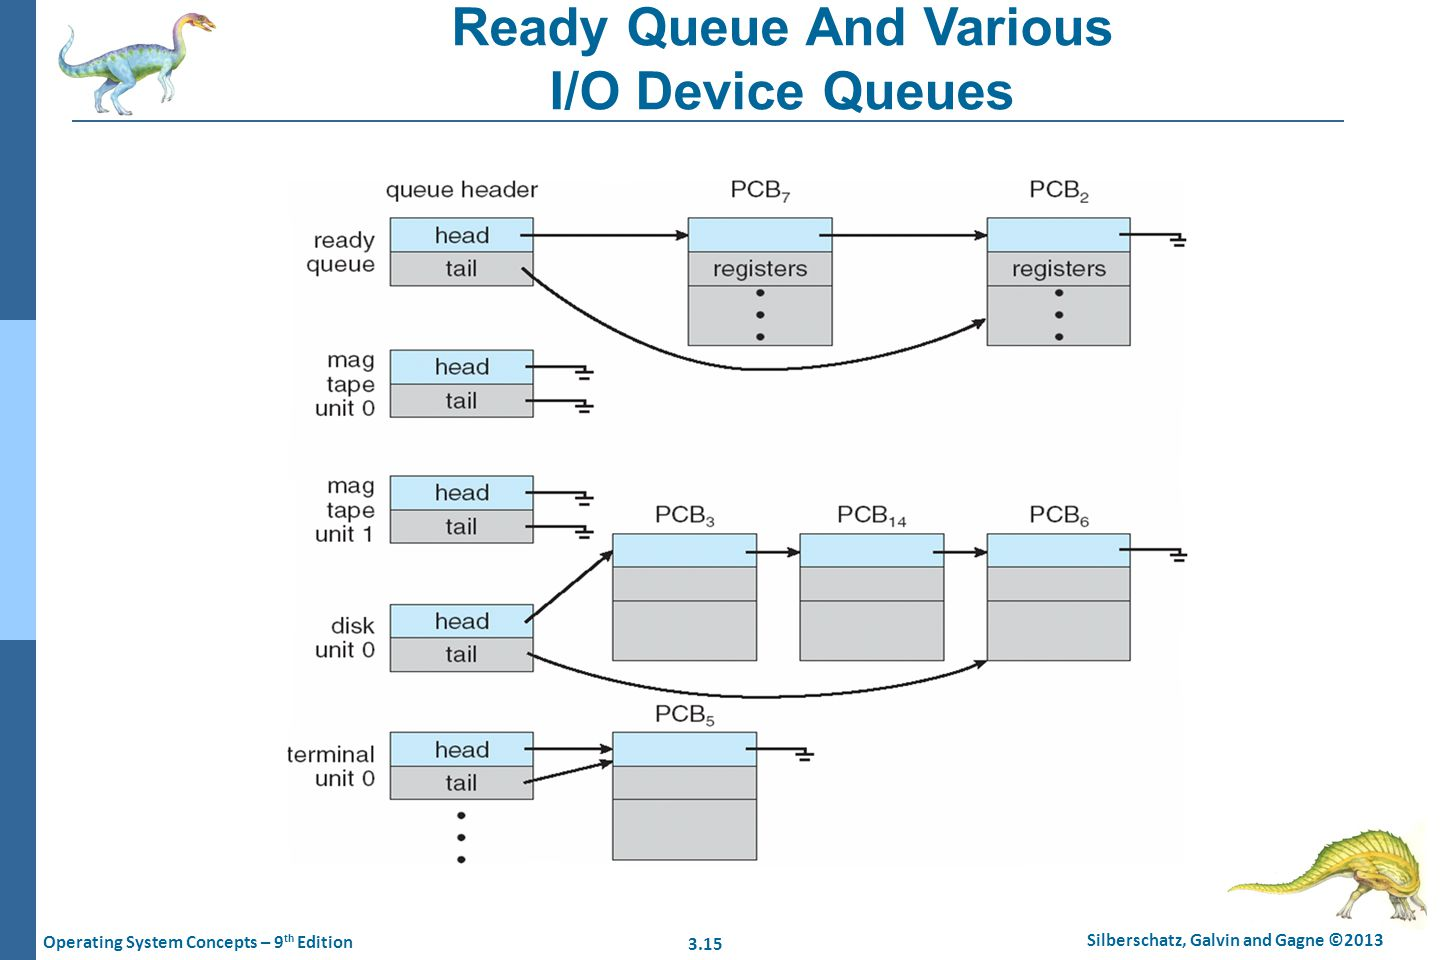 3.15 Silberschatz, Galvin and Gagne ©2013 Operating System Concepts – 9 th Edition Ready Queue And Various I/O Device Queues